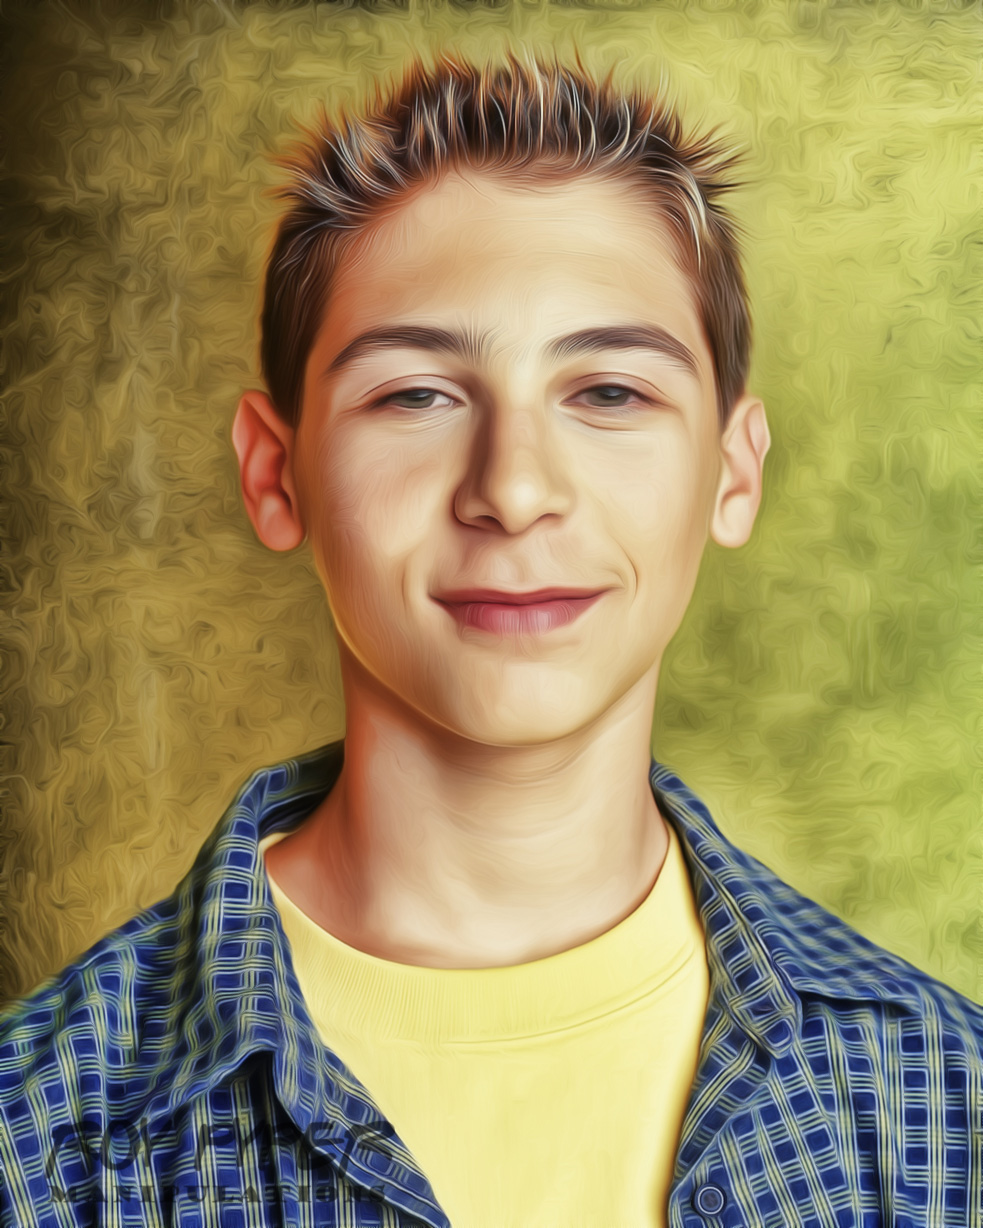 Dewey Malcolm In The Middle 2014 29638 | INFOBIT